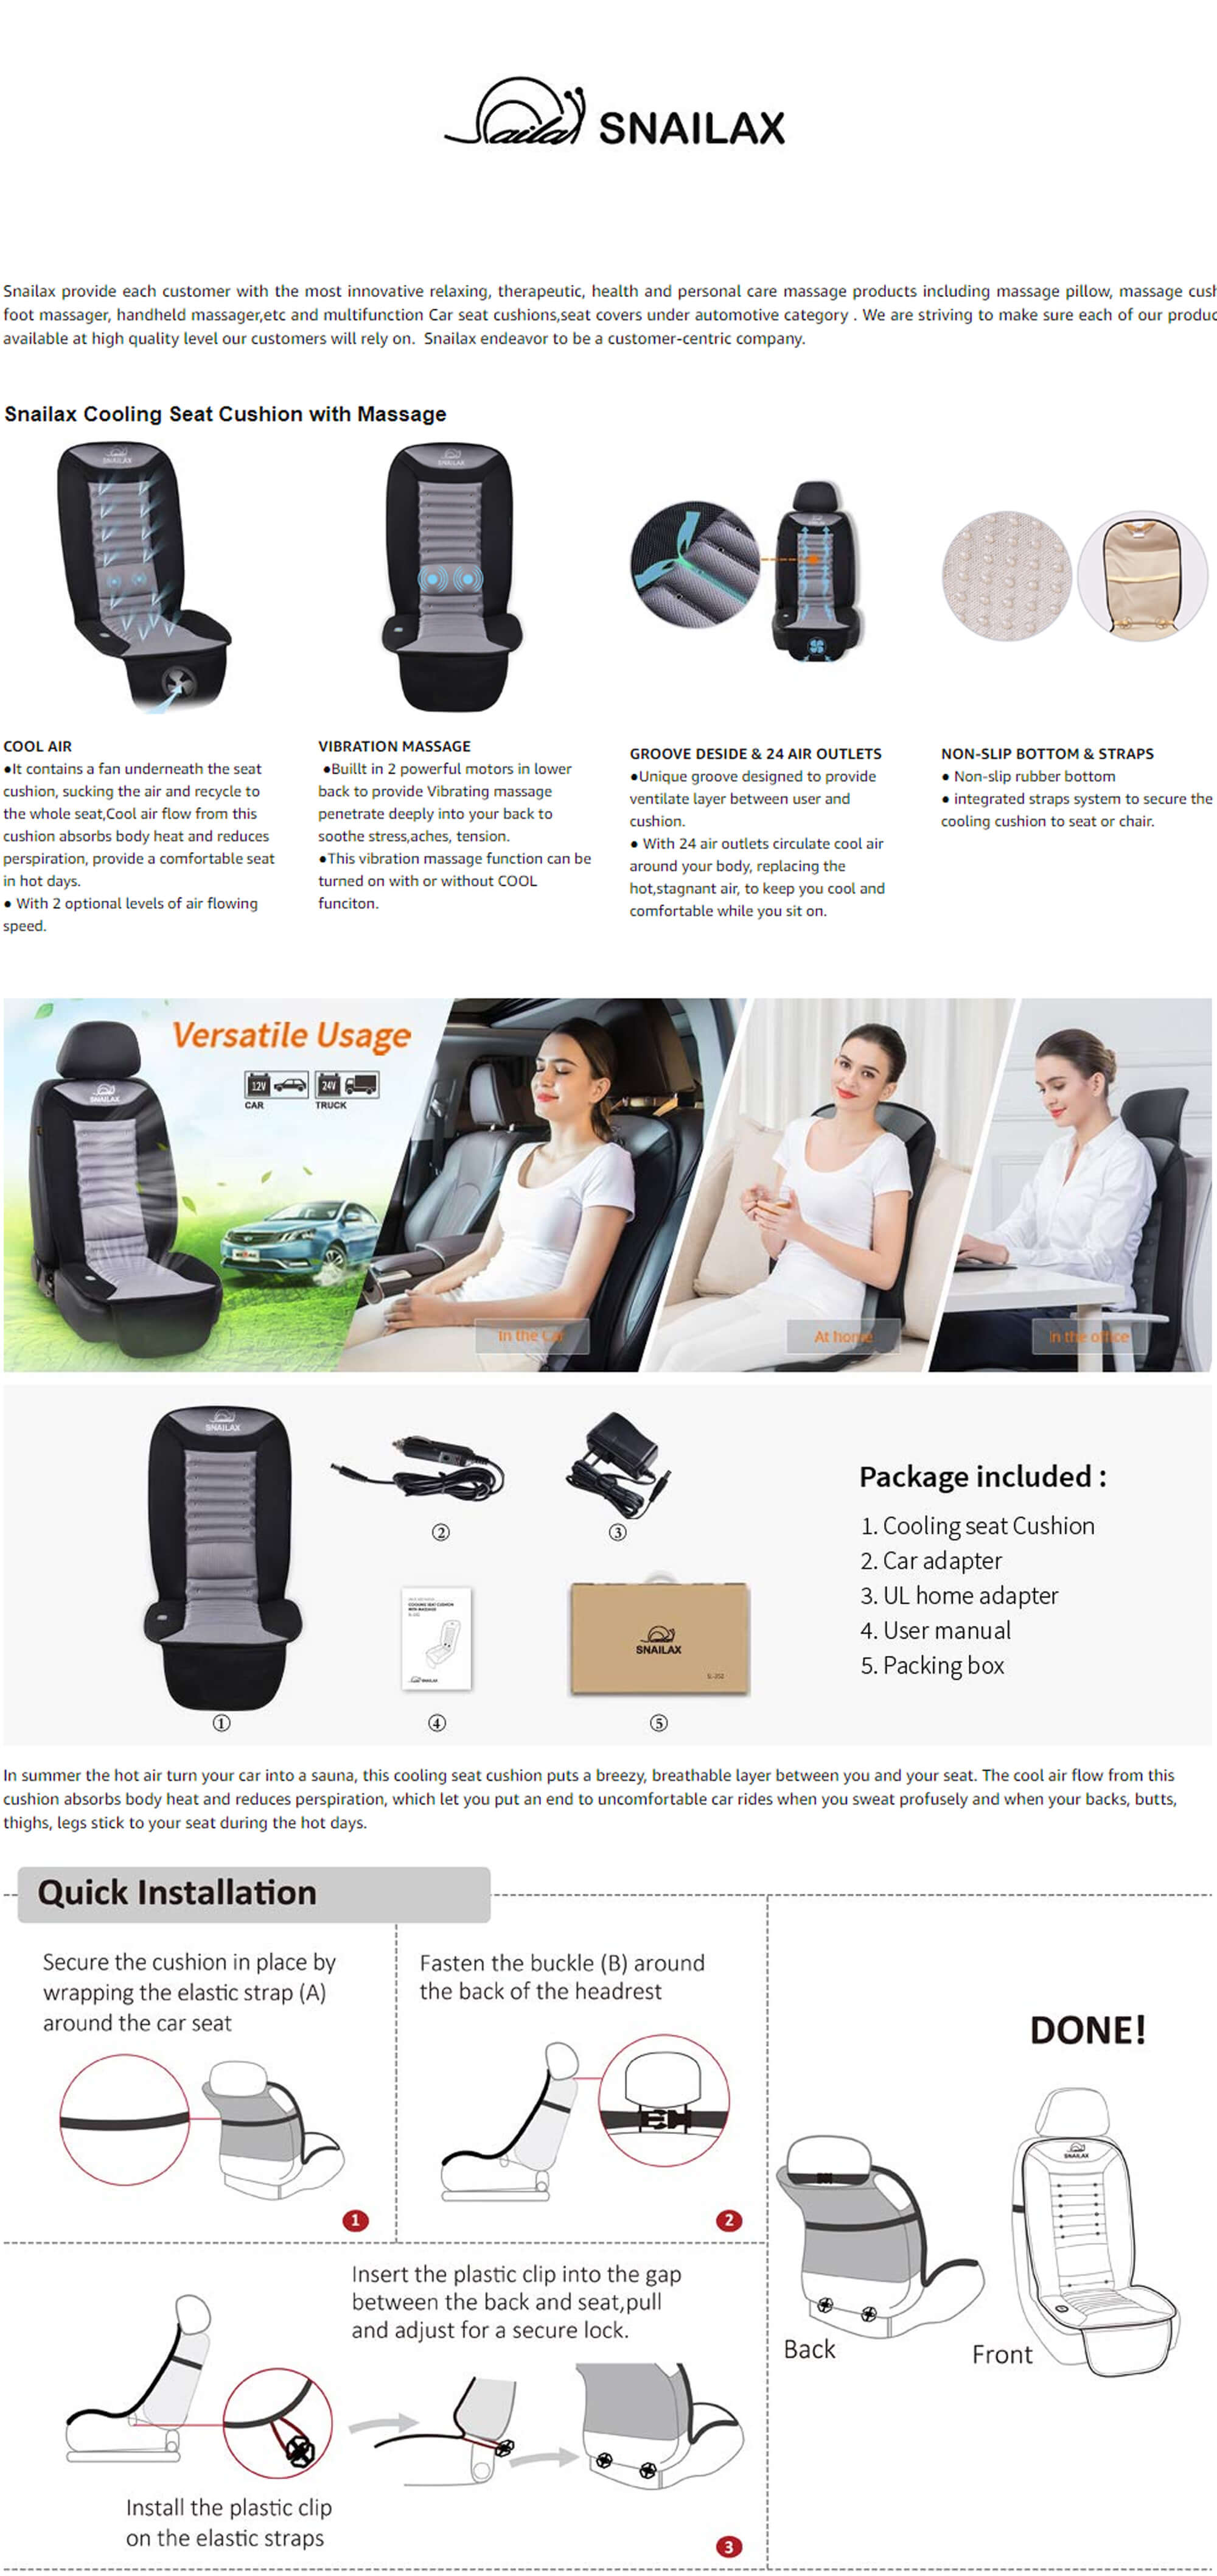 Snailax Cooling Car Seat Cushion Features